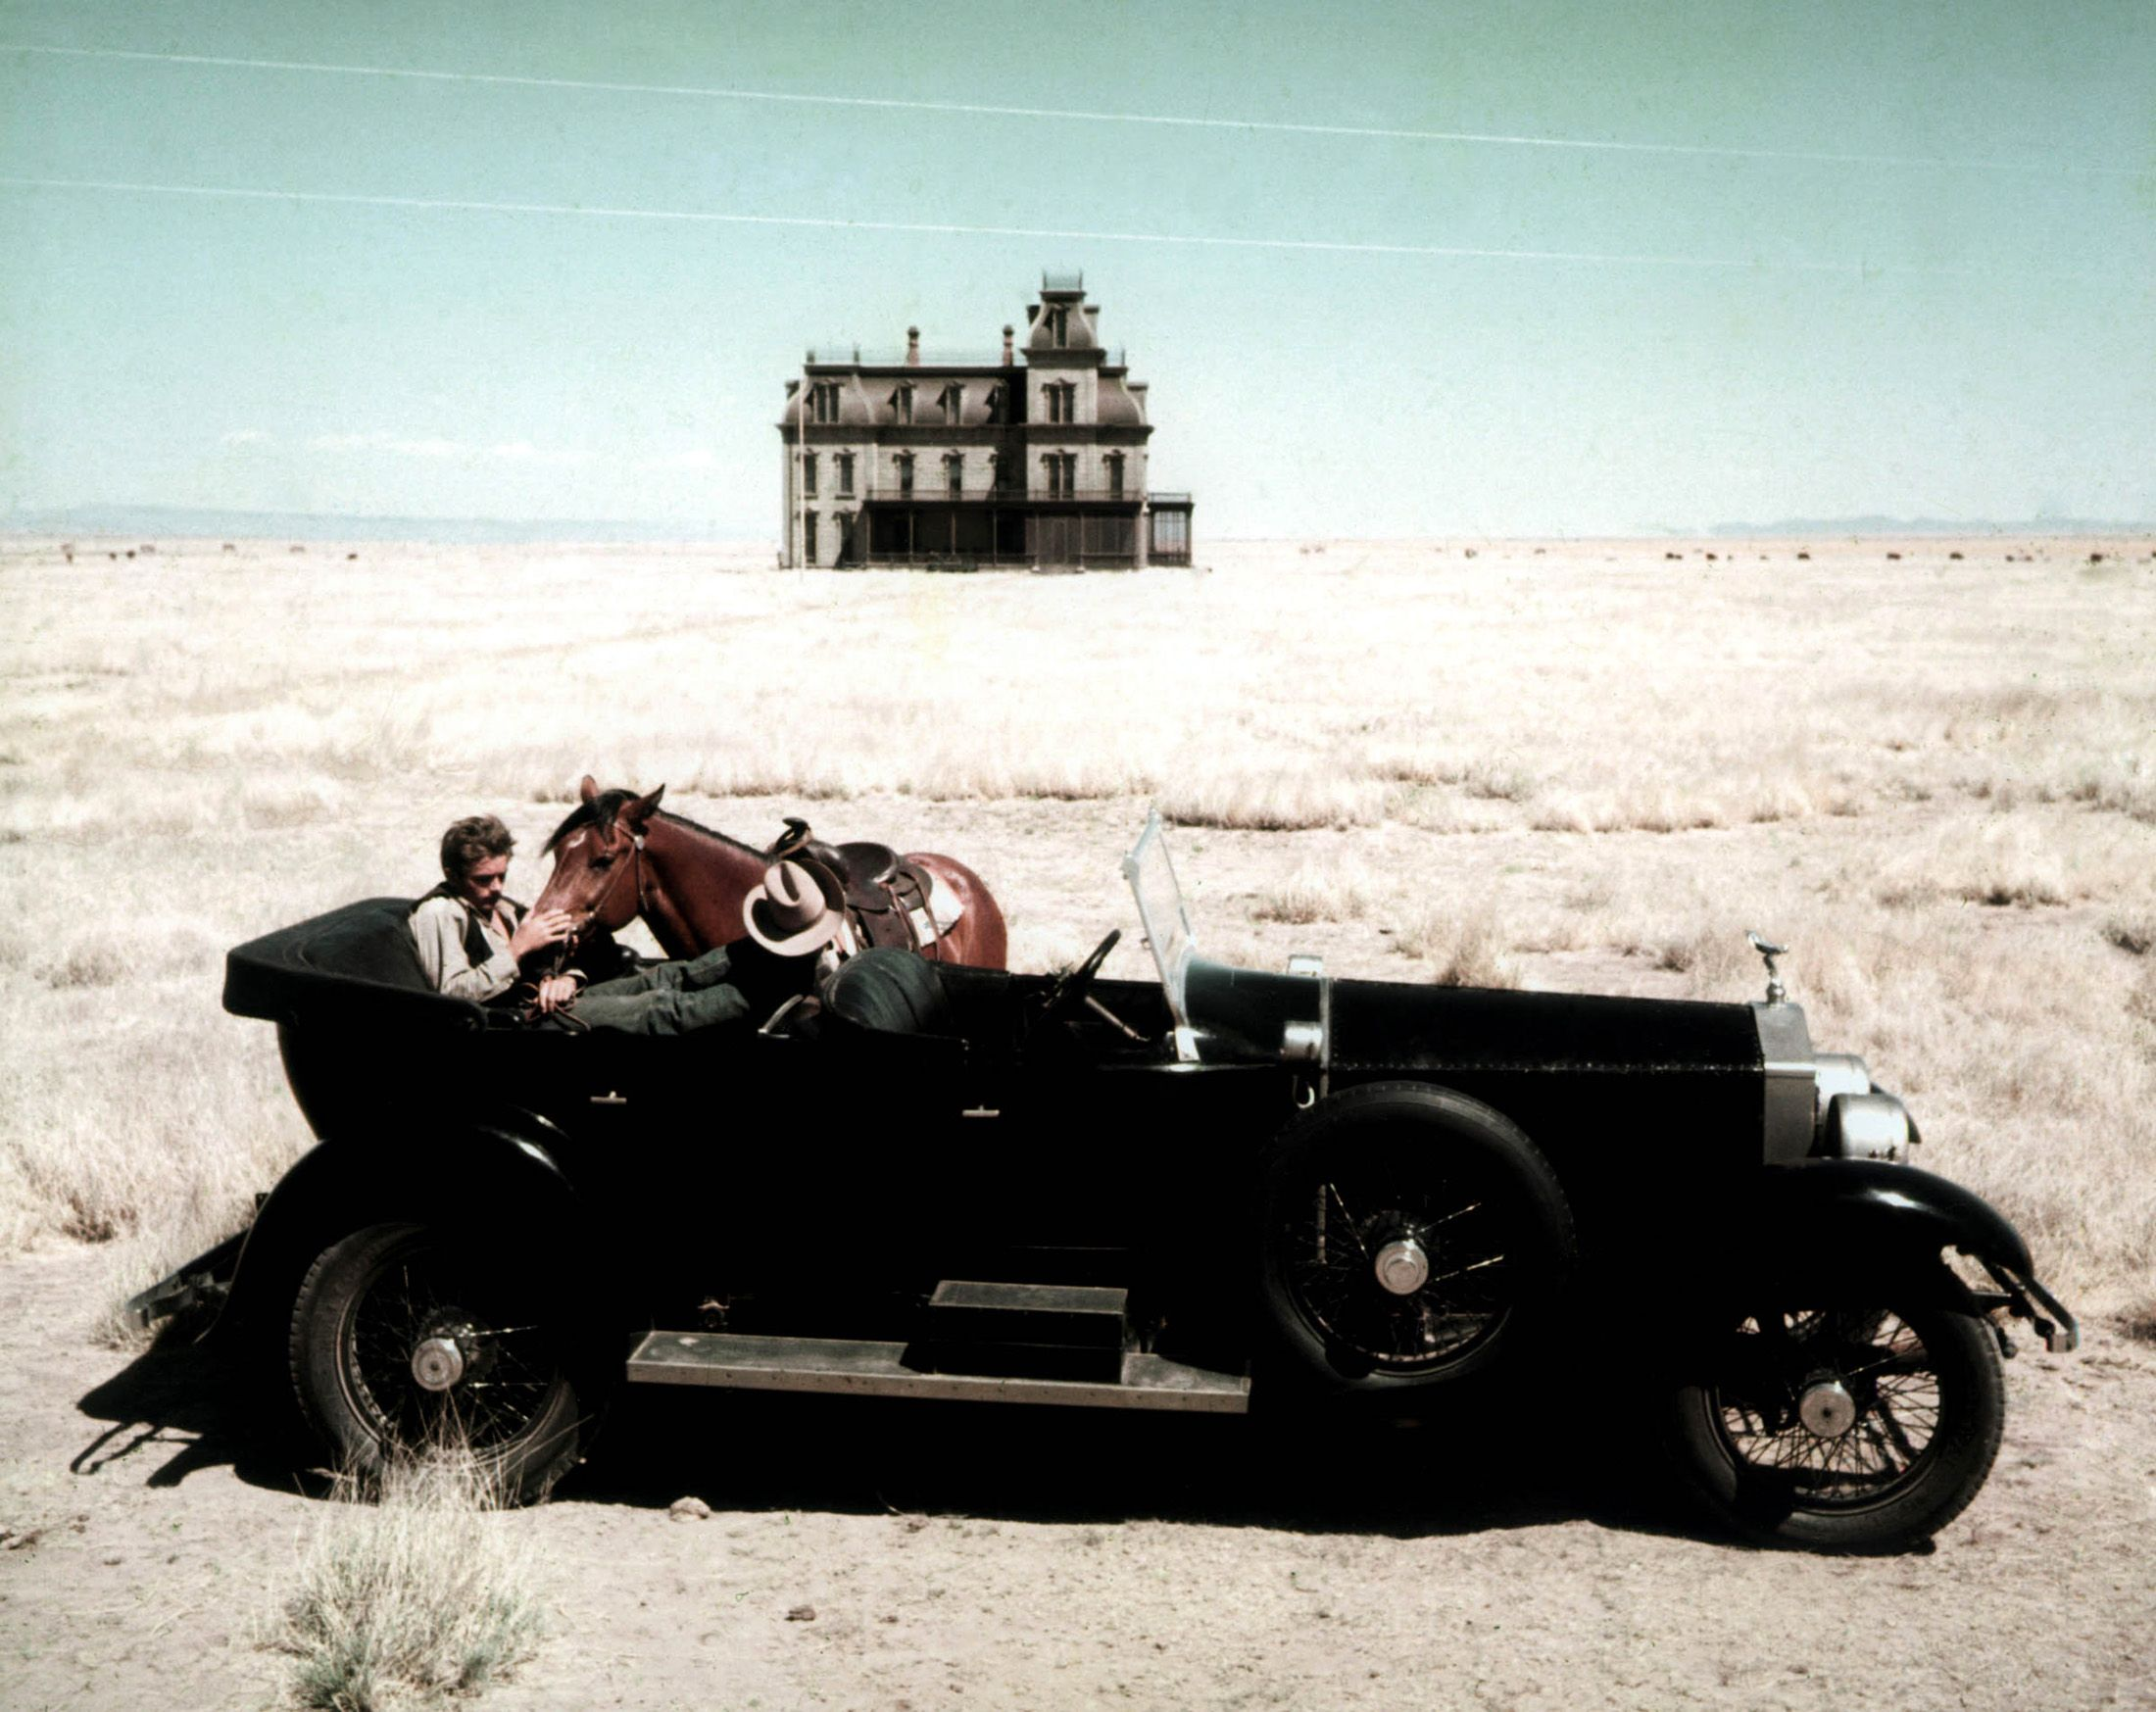 James Dean in a classic car and alongside  with his horse (1956 Giant)